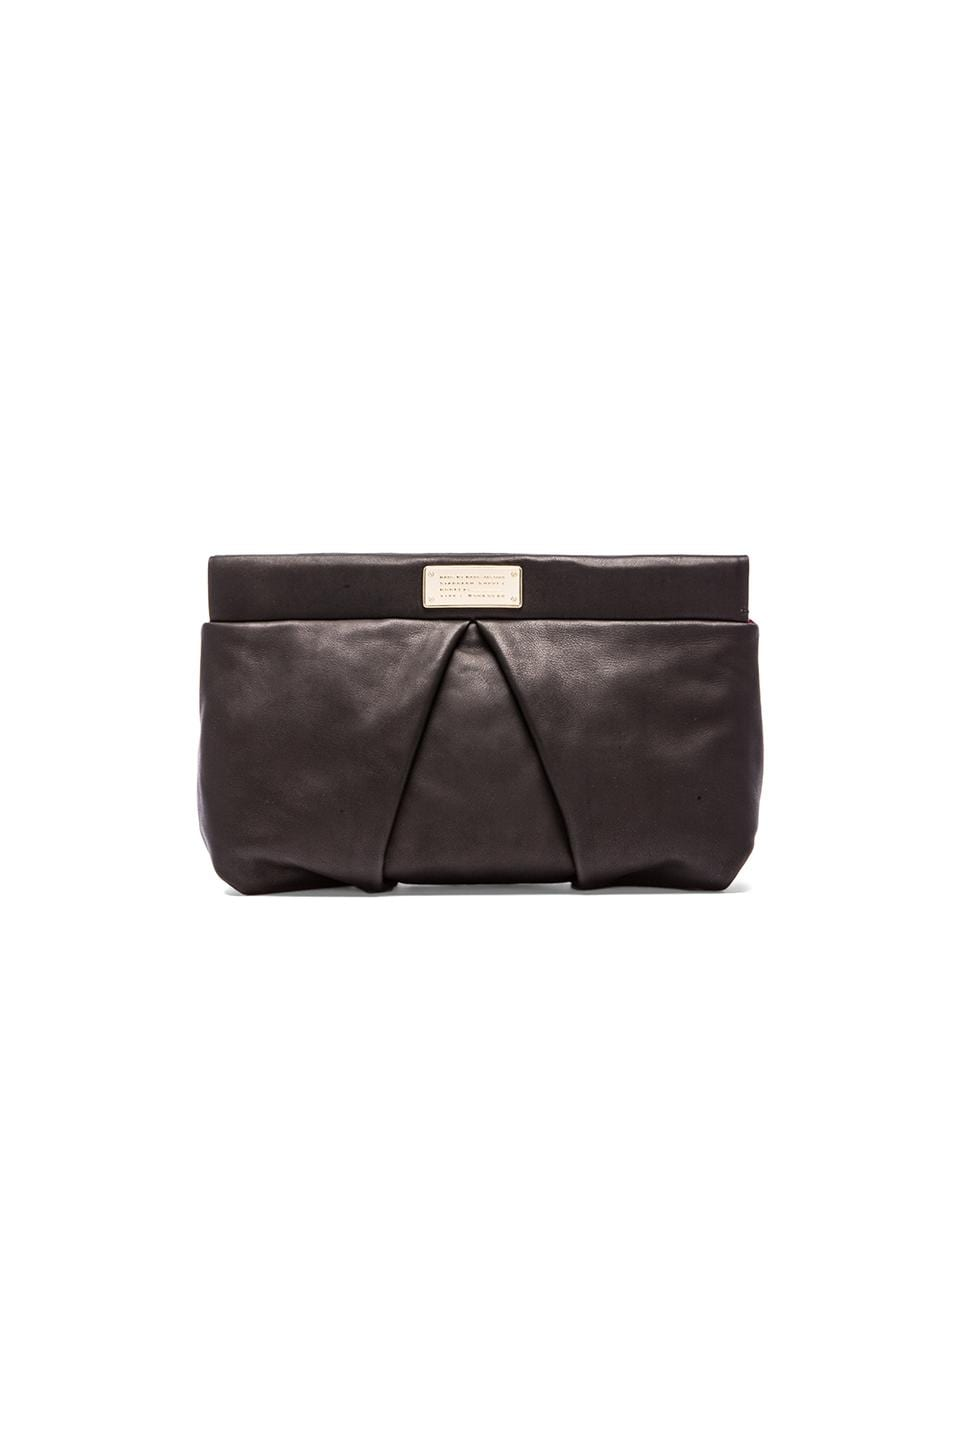 Marc by Marc Jacobs Marchive Clutch in Black